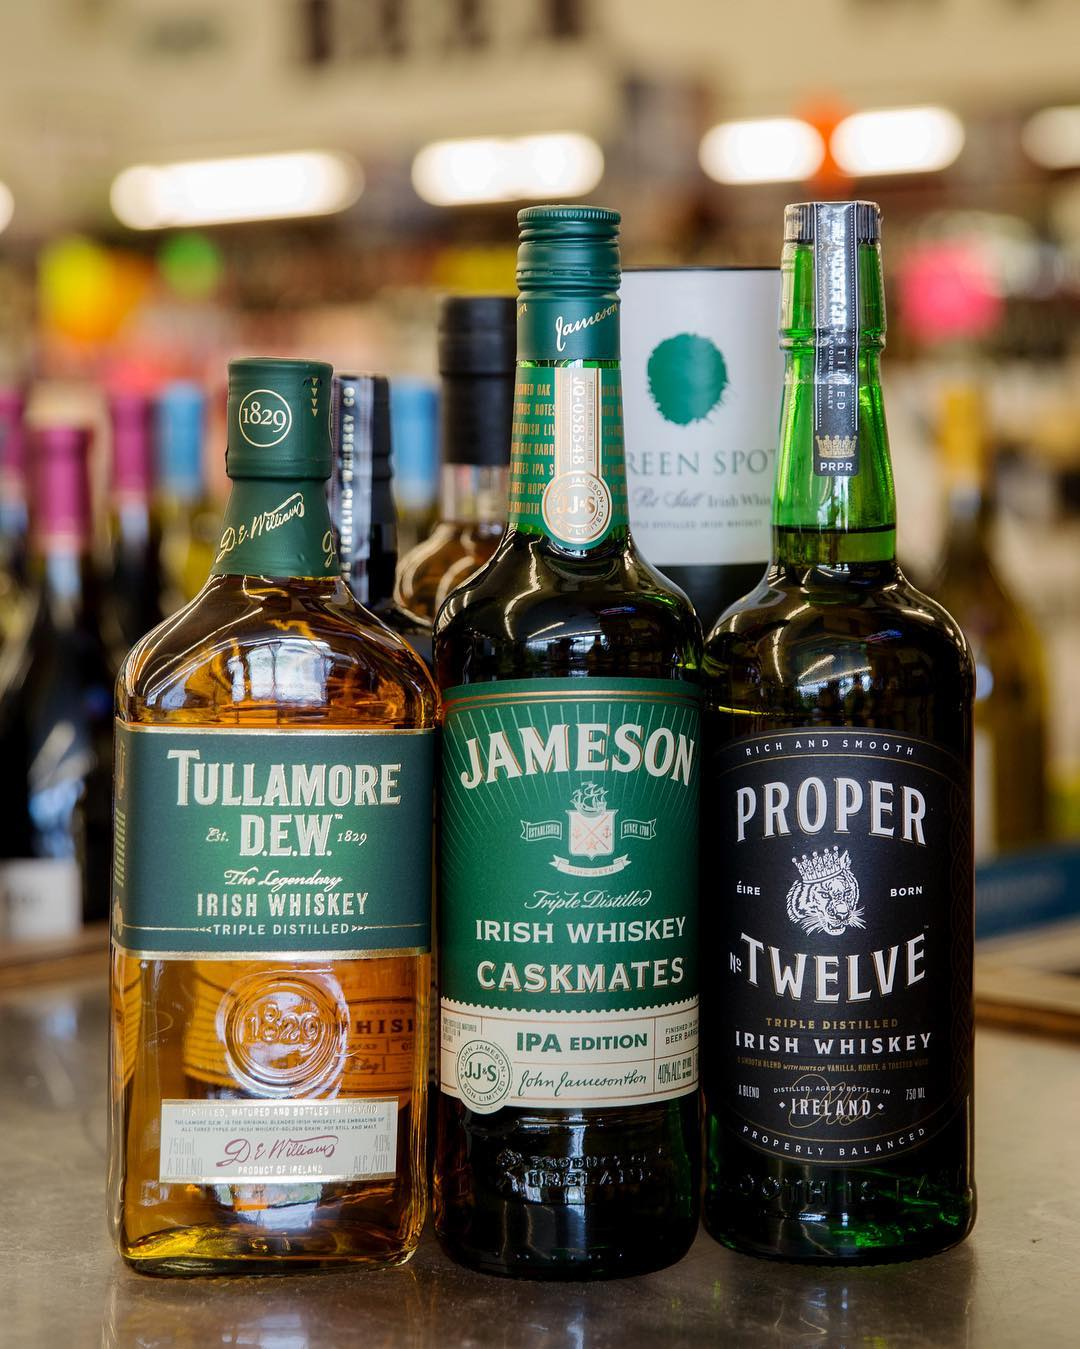 Come browse Calandro's extensive whiskey selection before the #stpattysday festivities this weekend. We've got these…